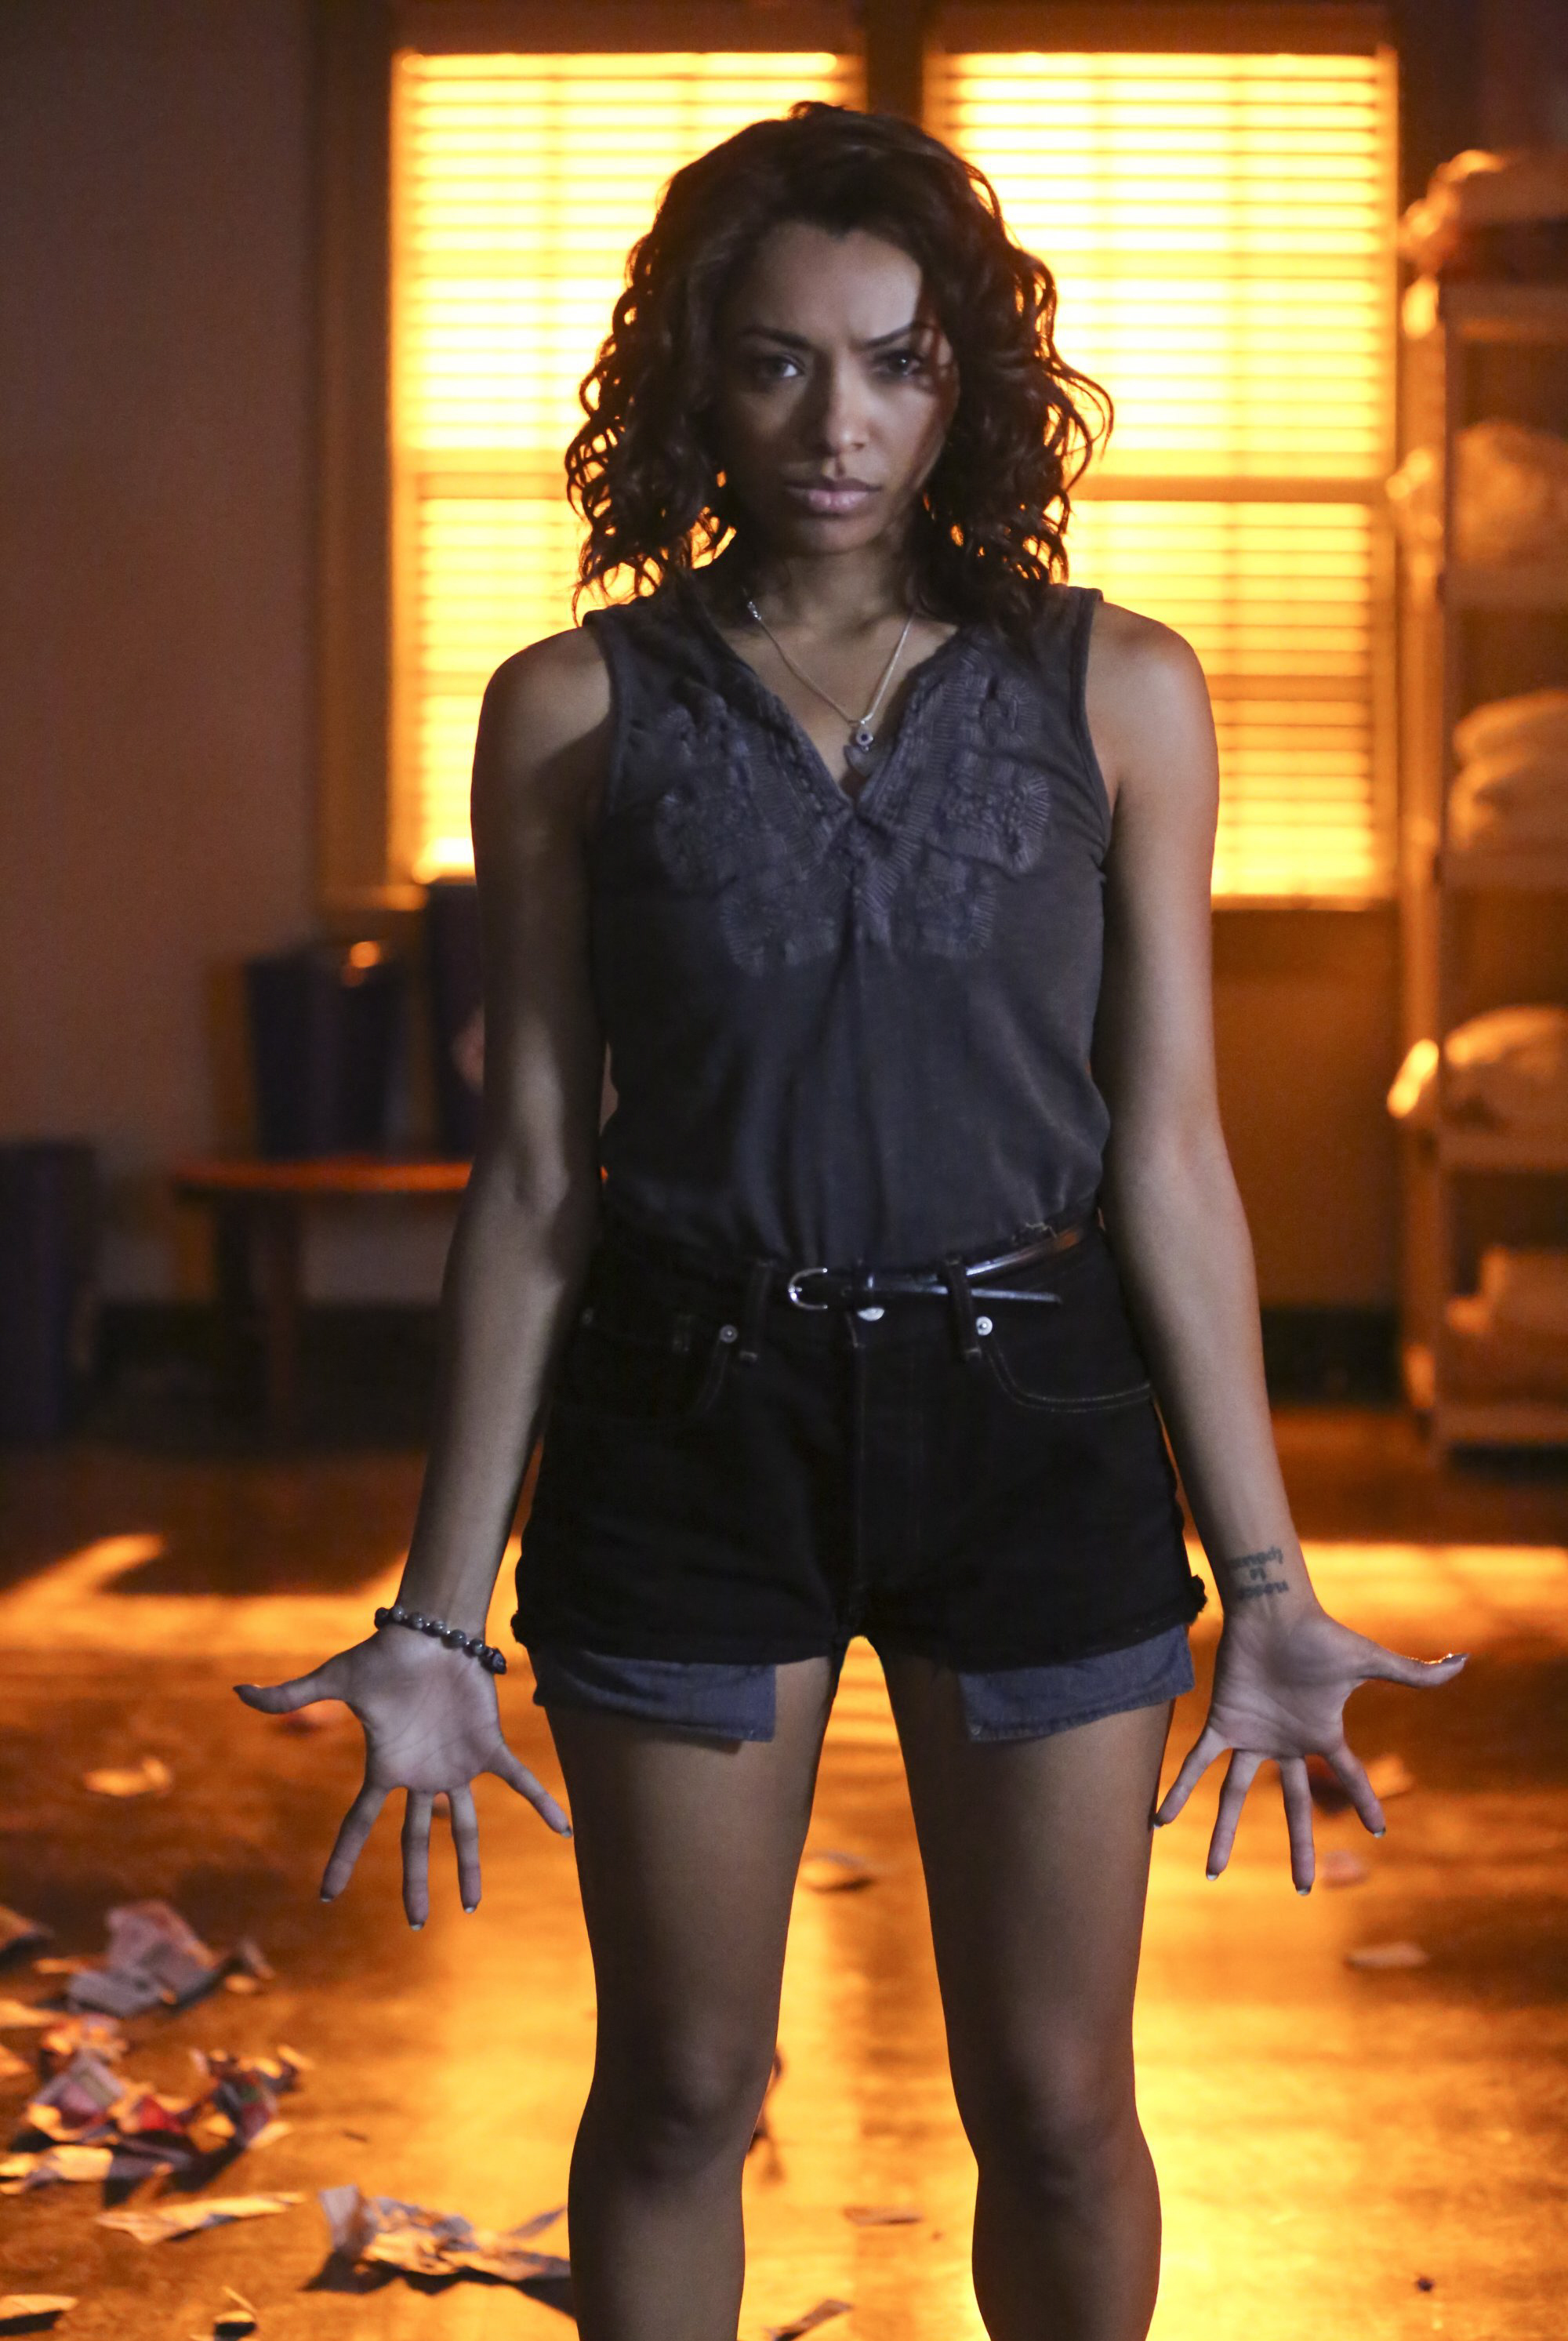 """Kat Graham starred as Bonnie Bennett on a Season 7 episode of The CW's """"The Vampire Diaries"""" titled """"Age of Innocence"""" in 2015."""